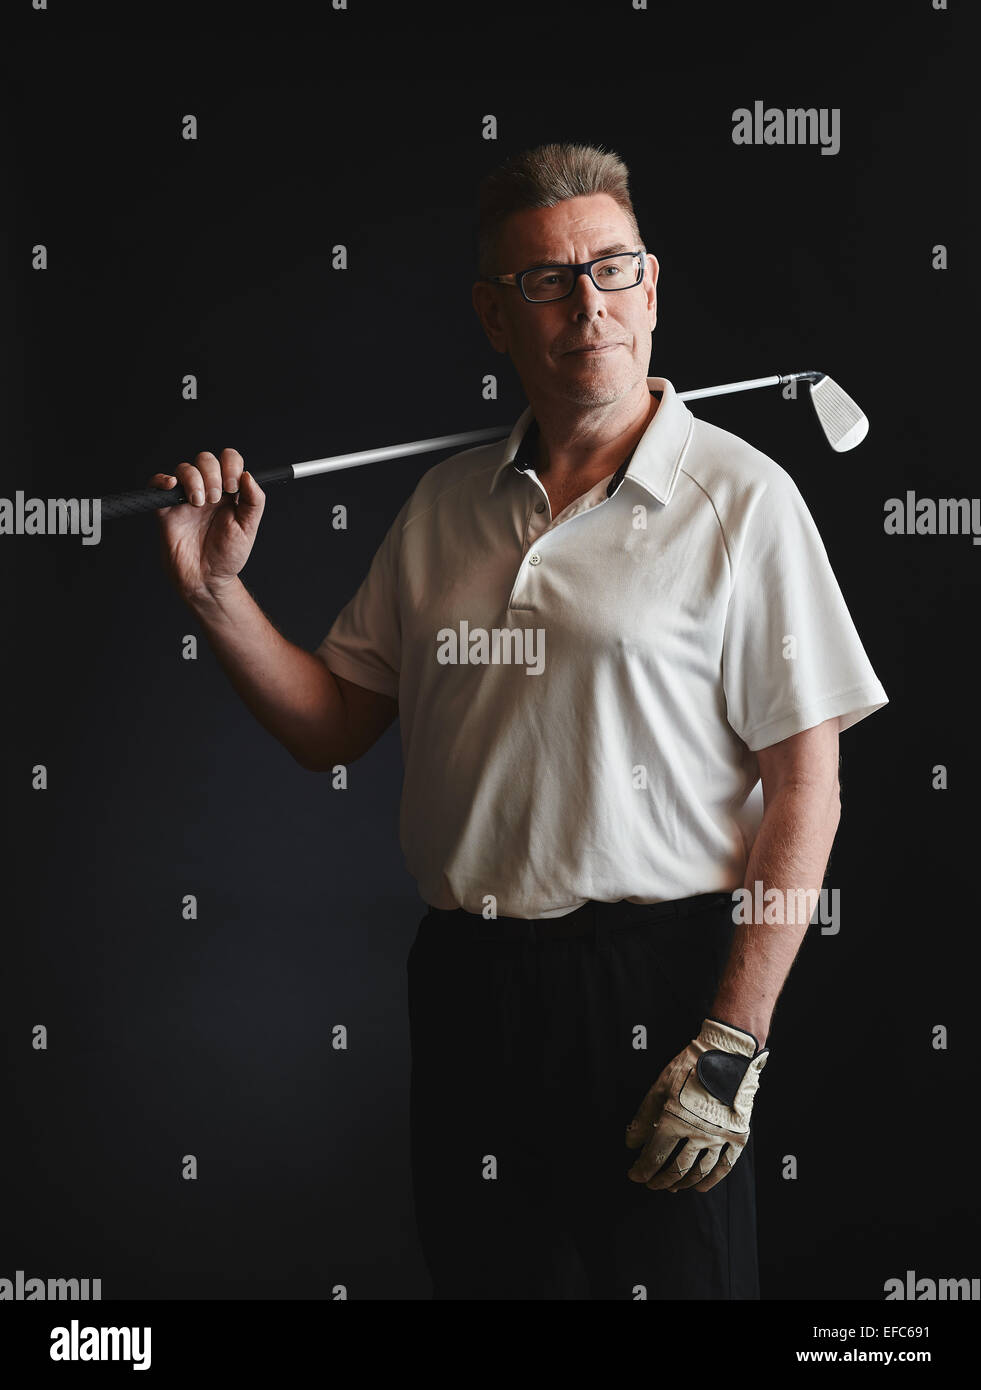 Mature man golfer wearing a white shirt and hold a iron golf club on his shoulder - studio shot, black background - Stock Image